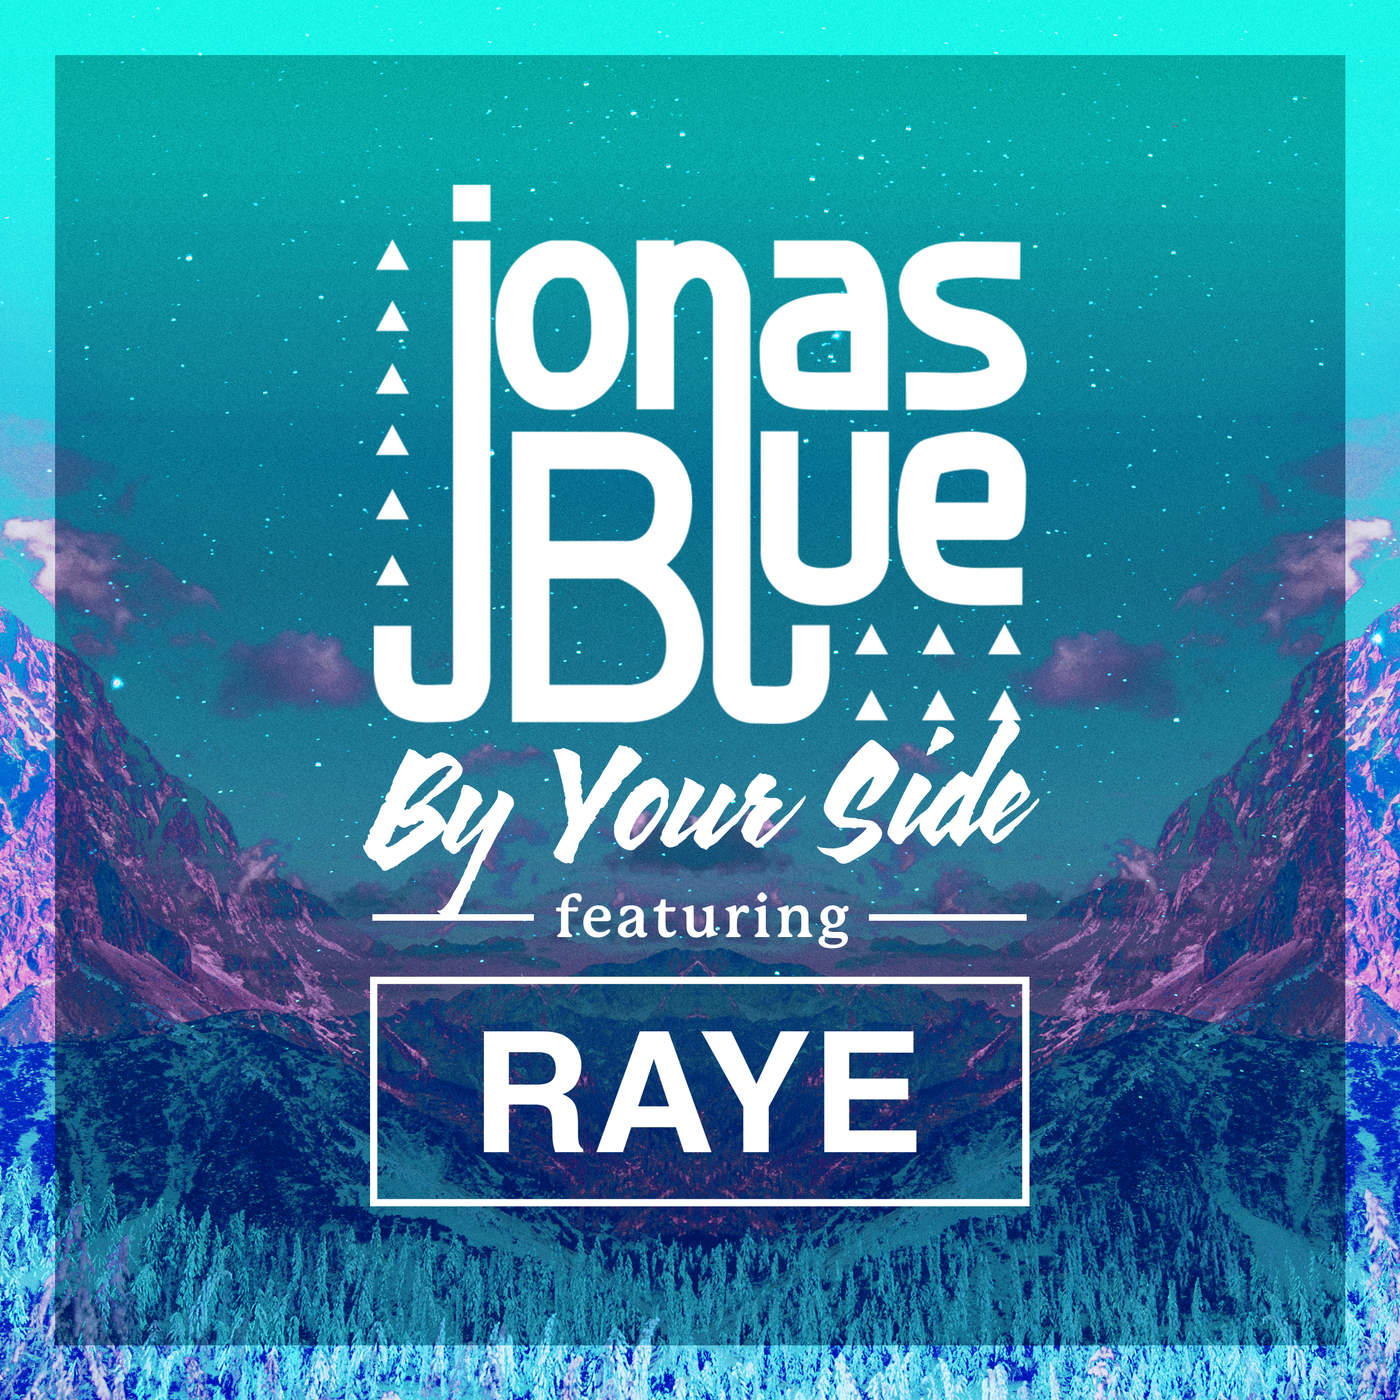 Jonas Blue - By Your Side (feat. RAYE) - Single Cover